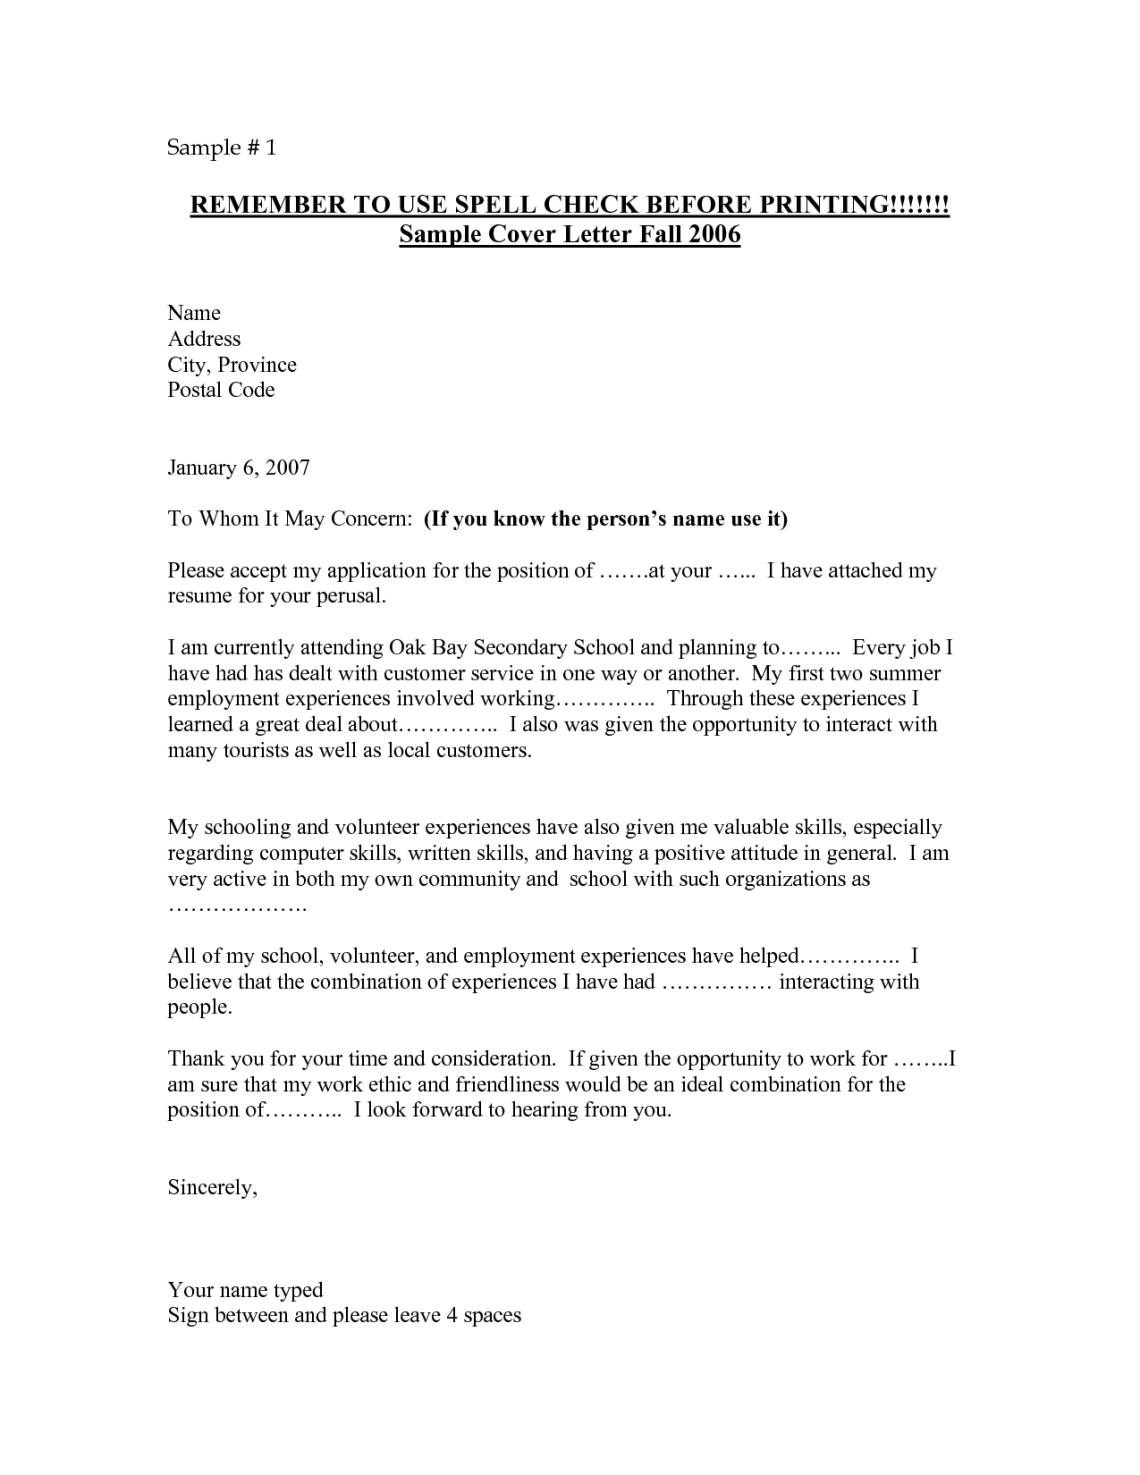 cover letter cover letter format layout ideas download spark templates is it appropriate to address a is it appropriate to start a cover letter with to how do you start a cover letter